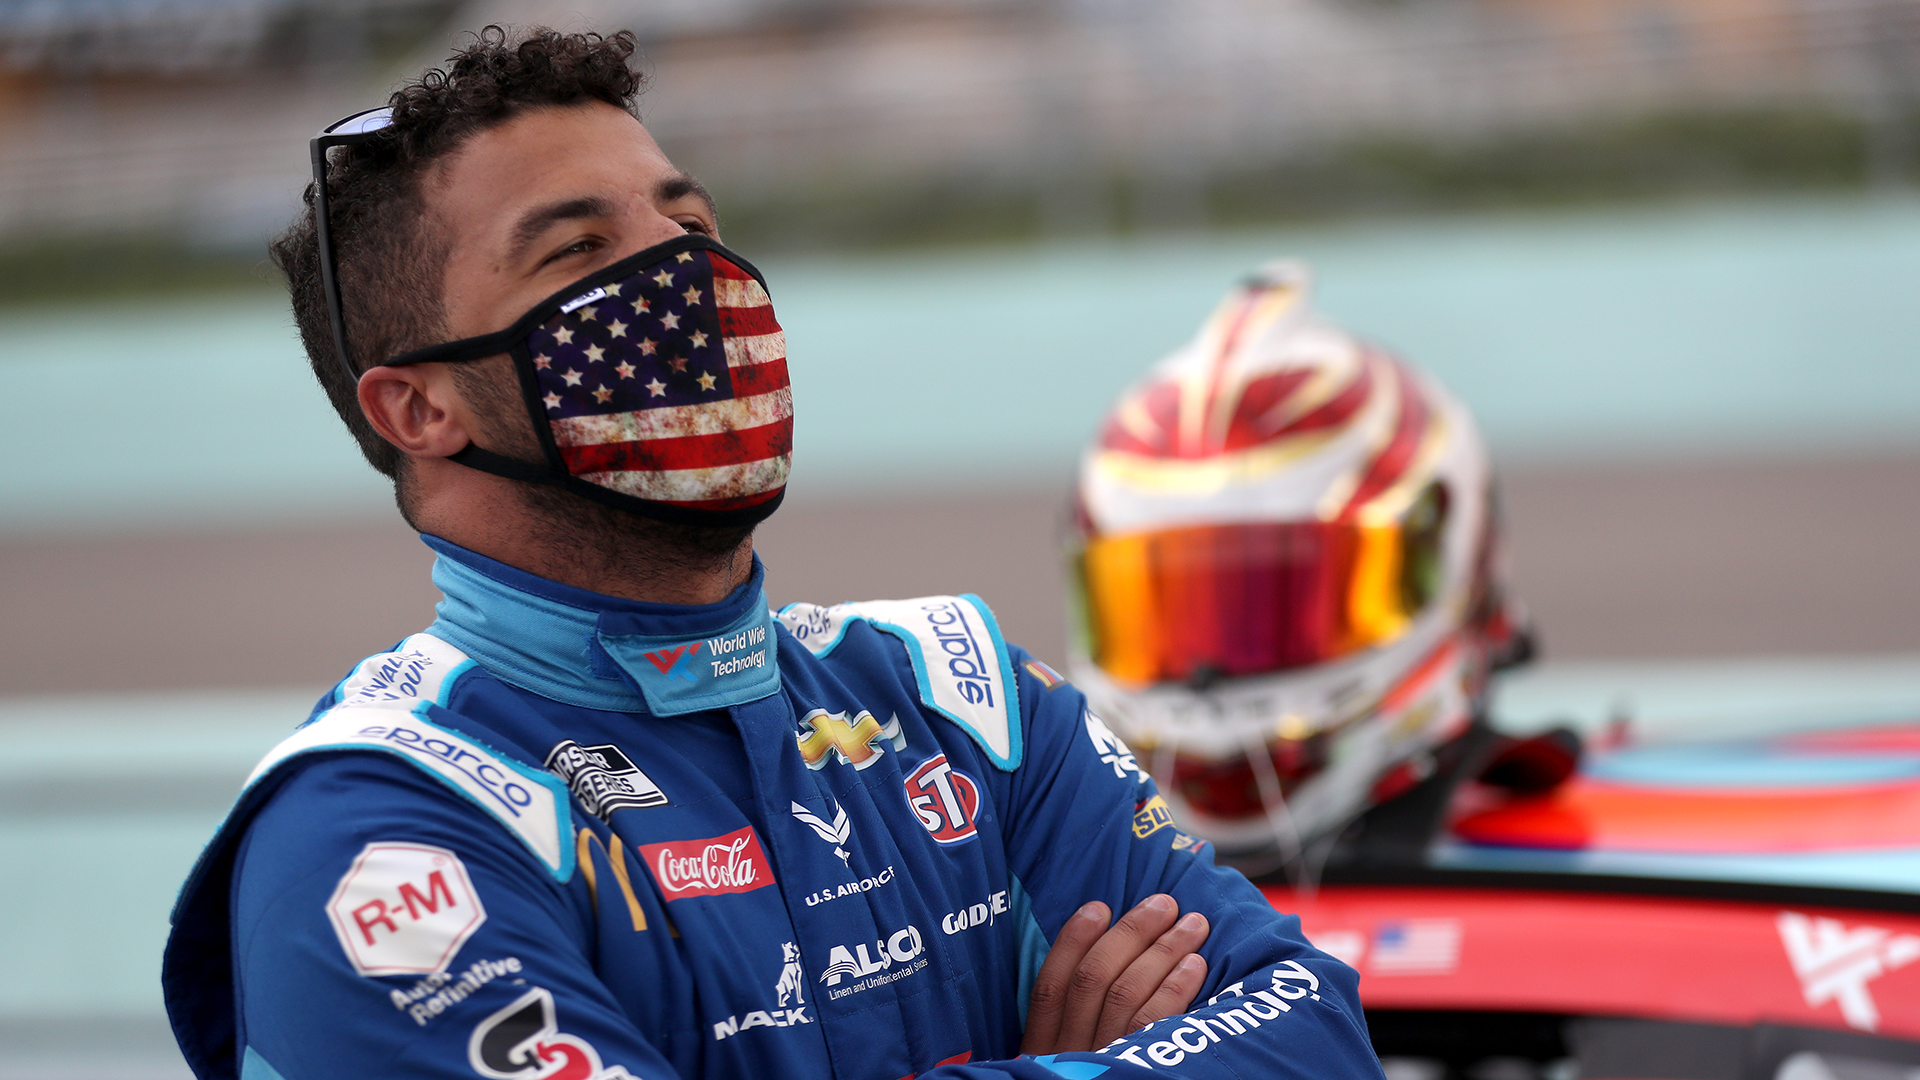 Mike Skinner's son said Bubba Wallace should've been dragged 'around the pits' with noose – Sporting News